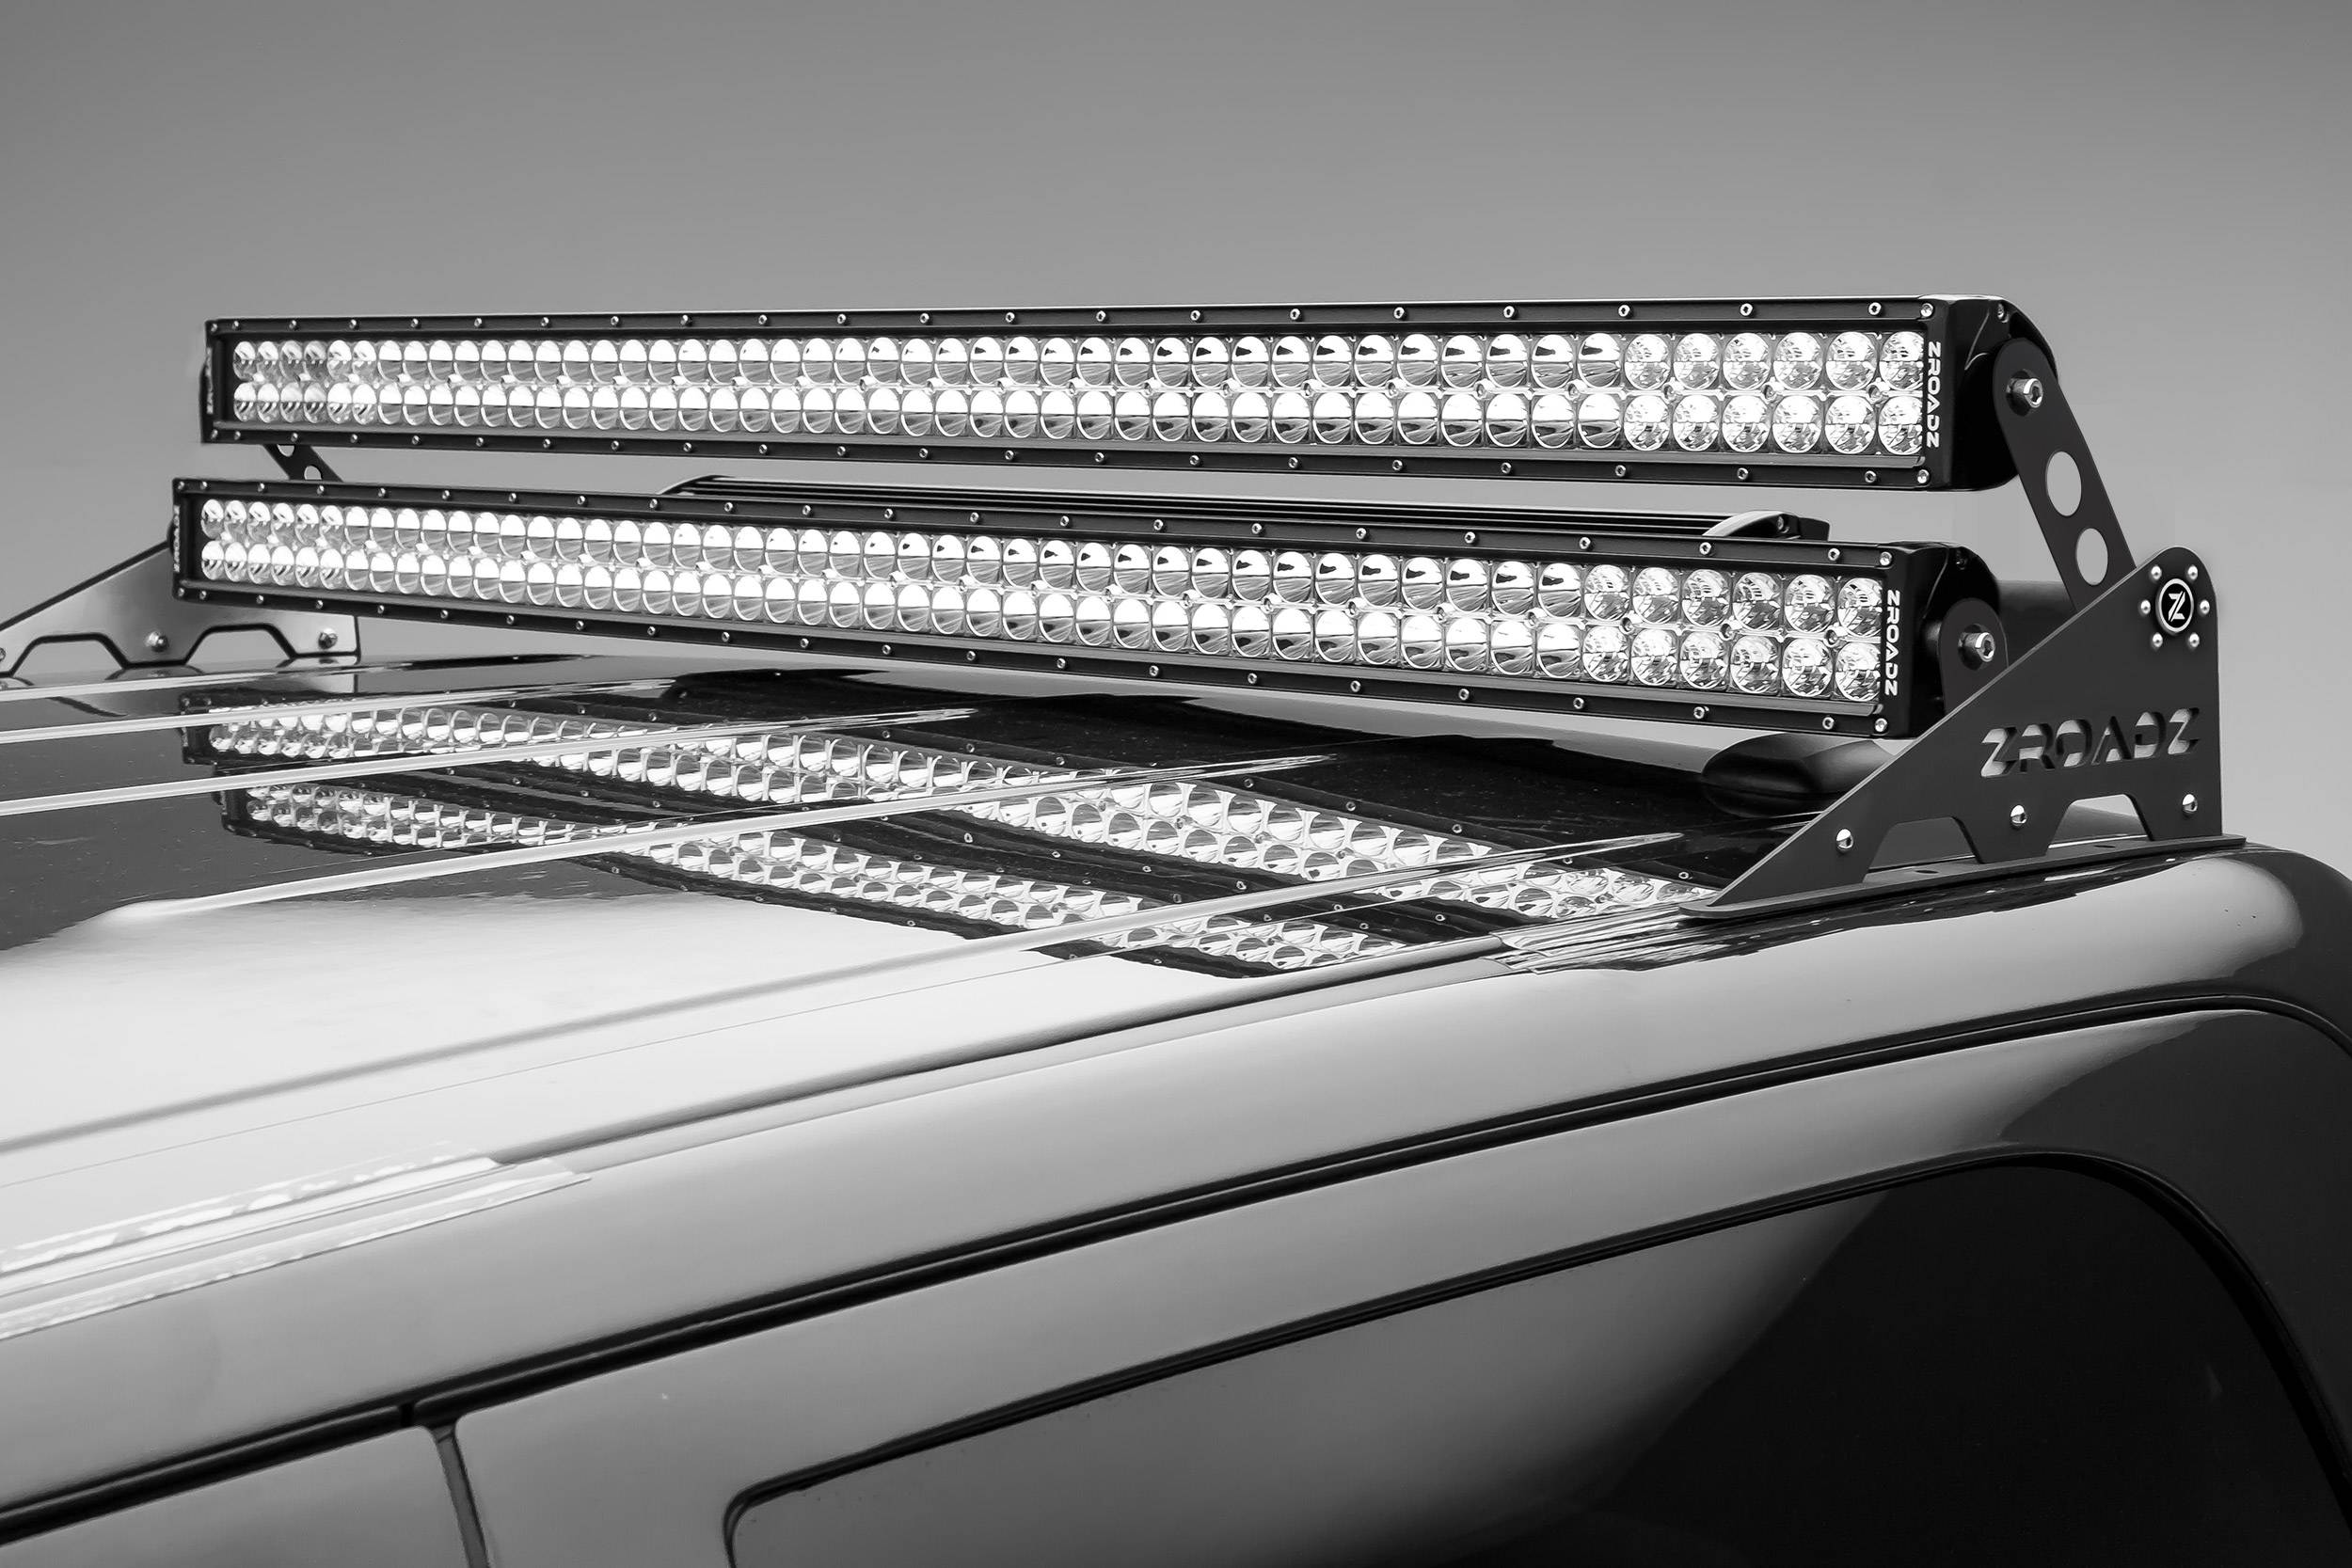 Universal Roof Mount LED Bracket Accessory To Add and Install Dual/Stacked Straight LED Light Bar - PN #Z350002